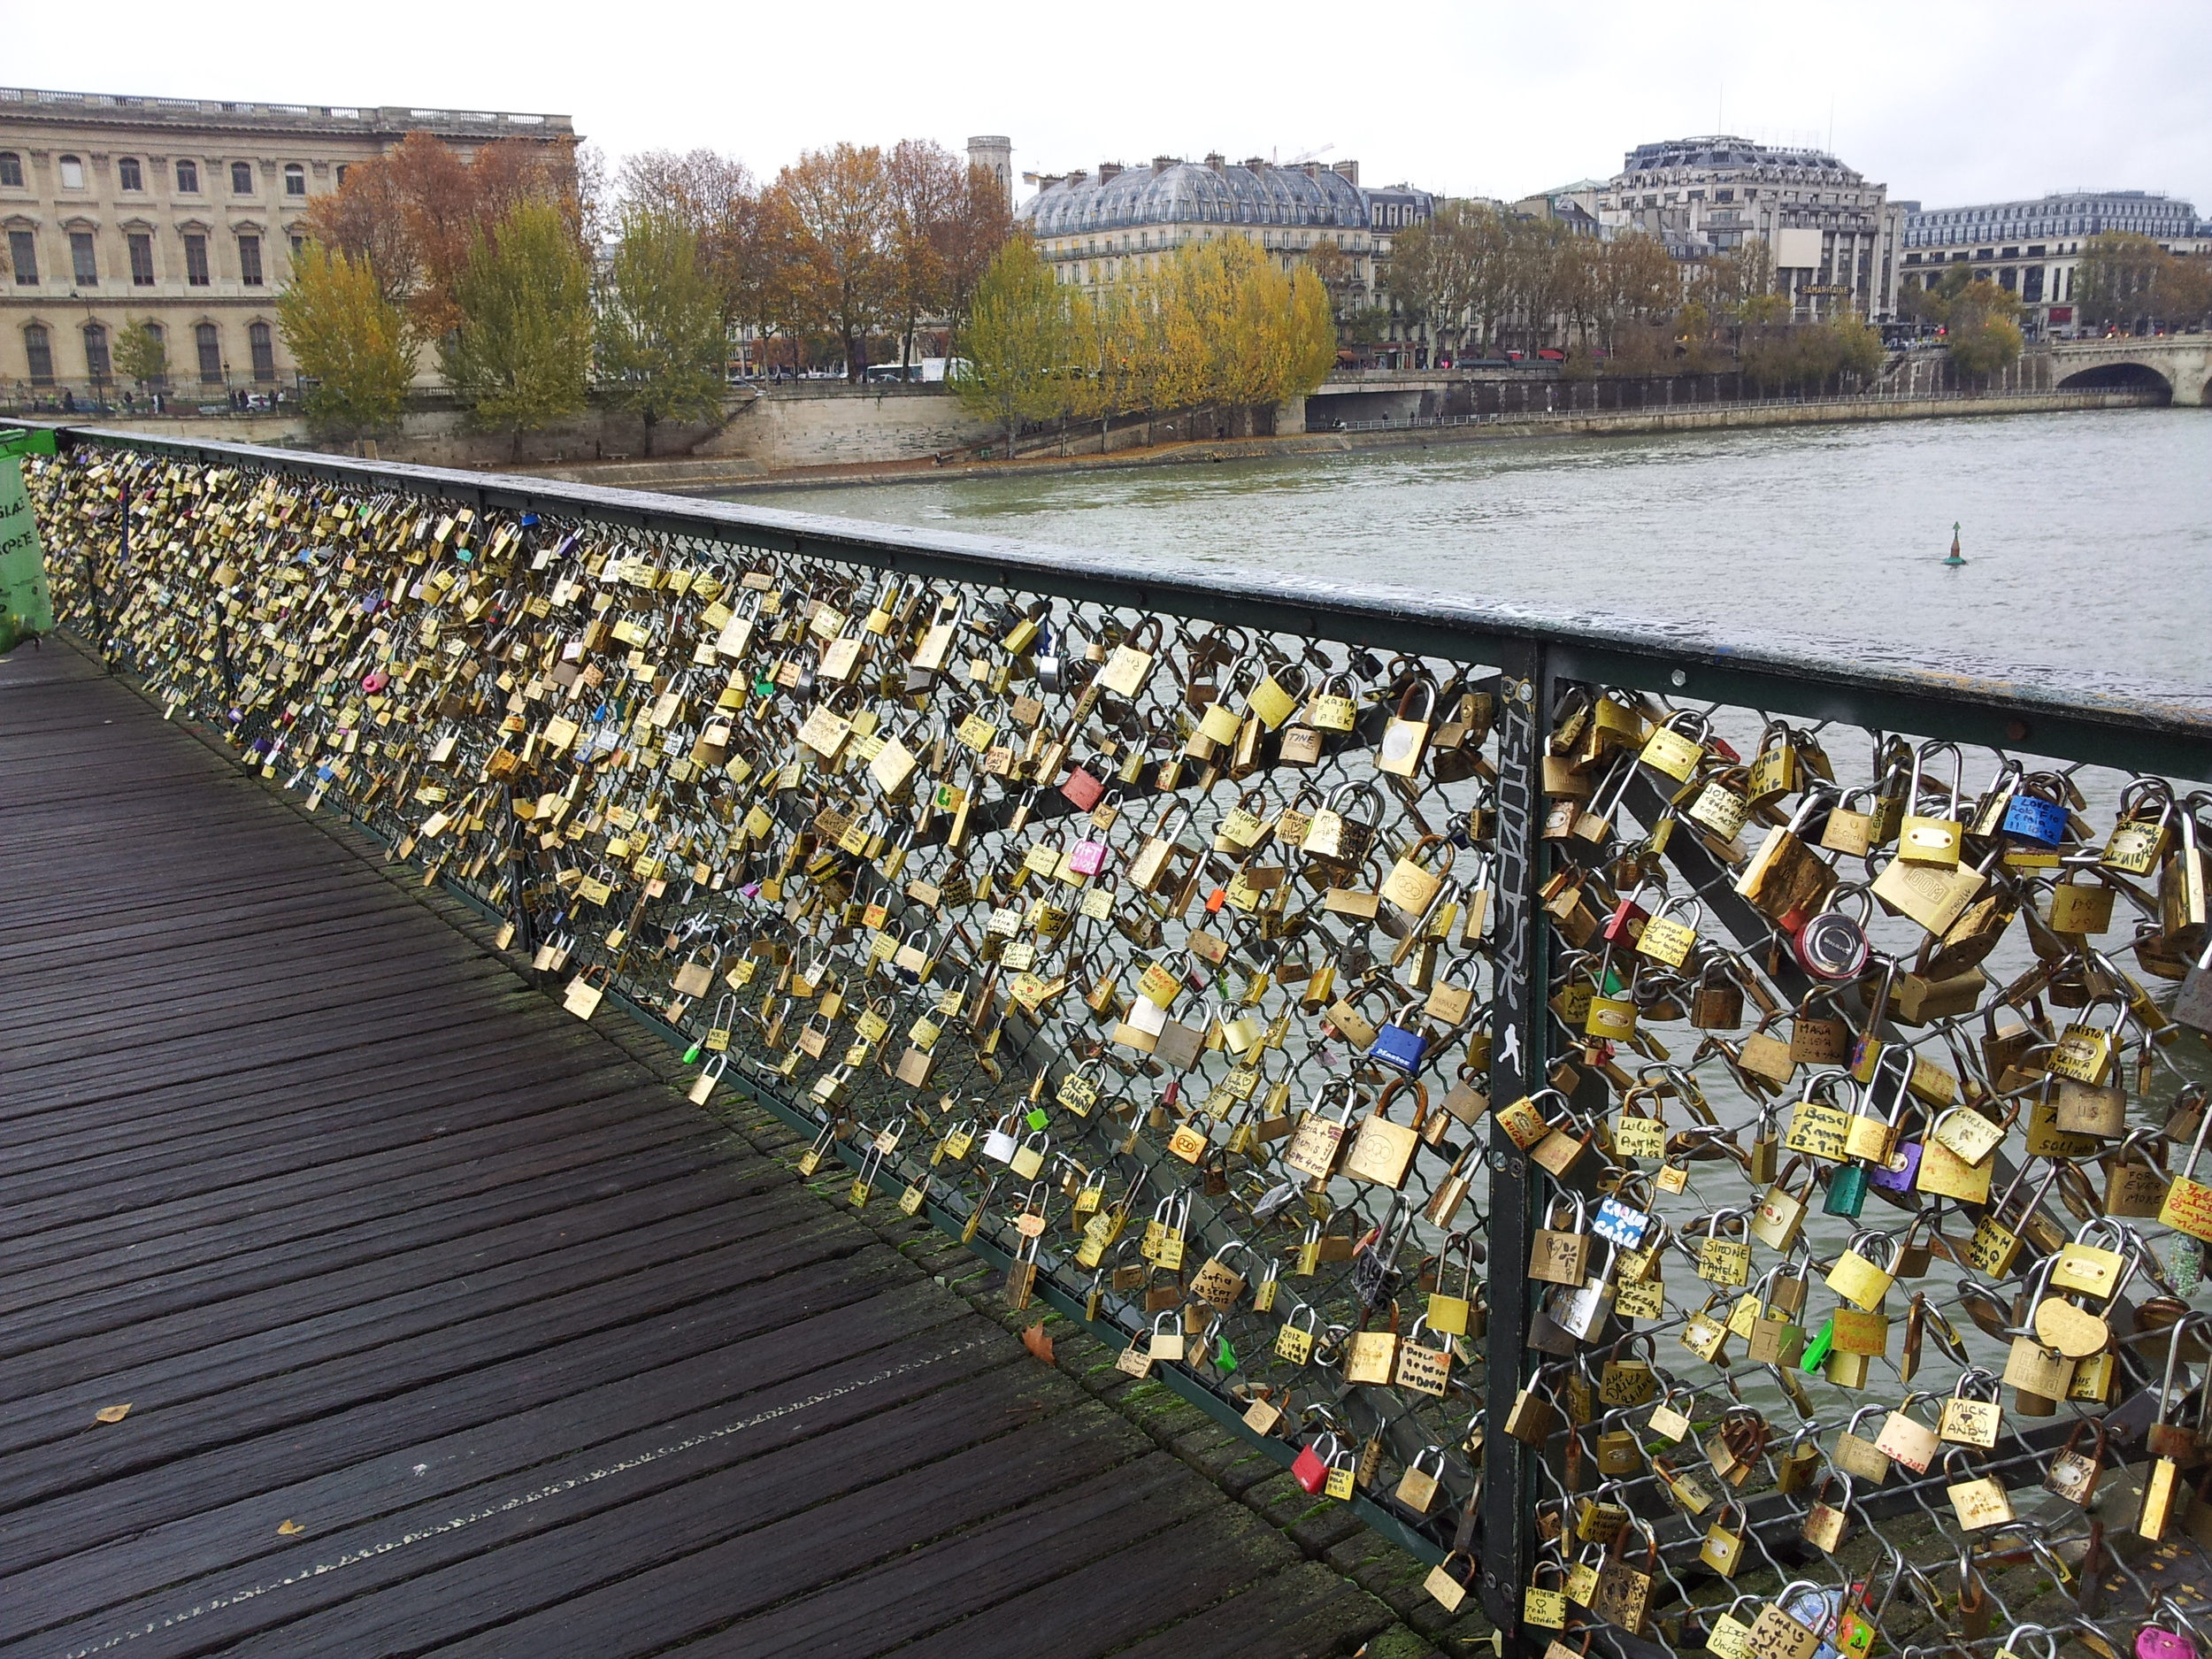 A history of romance written in padlocks. Pont des Arts, Paris, 2012.